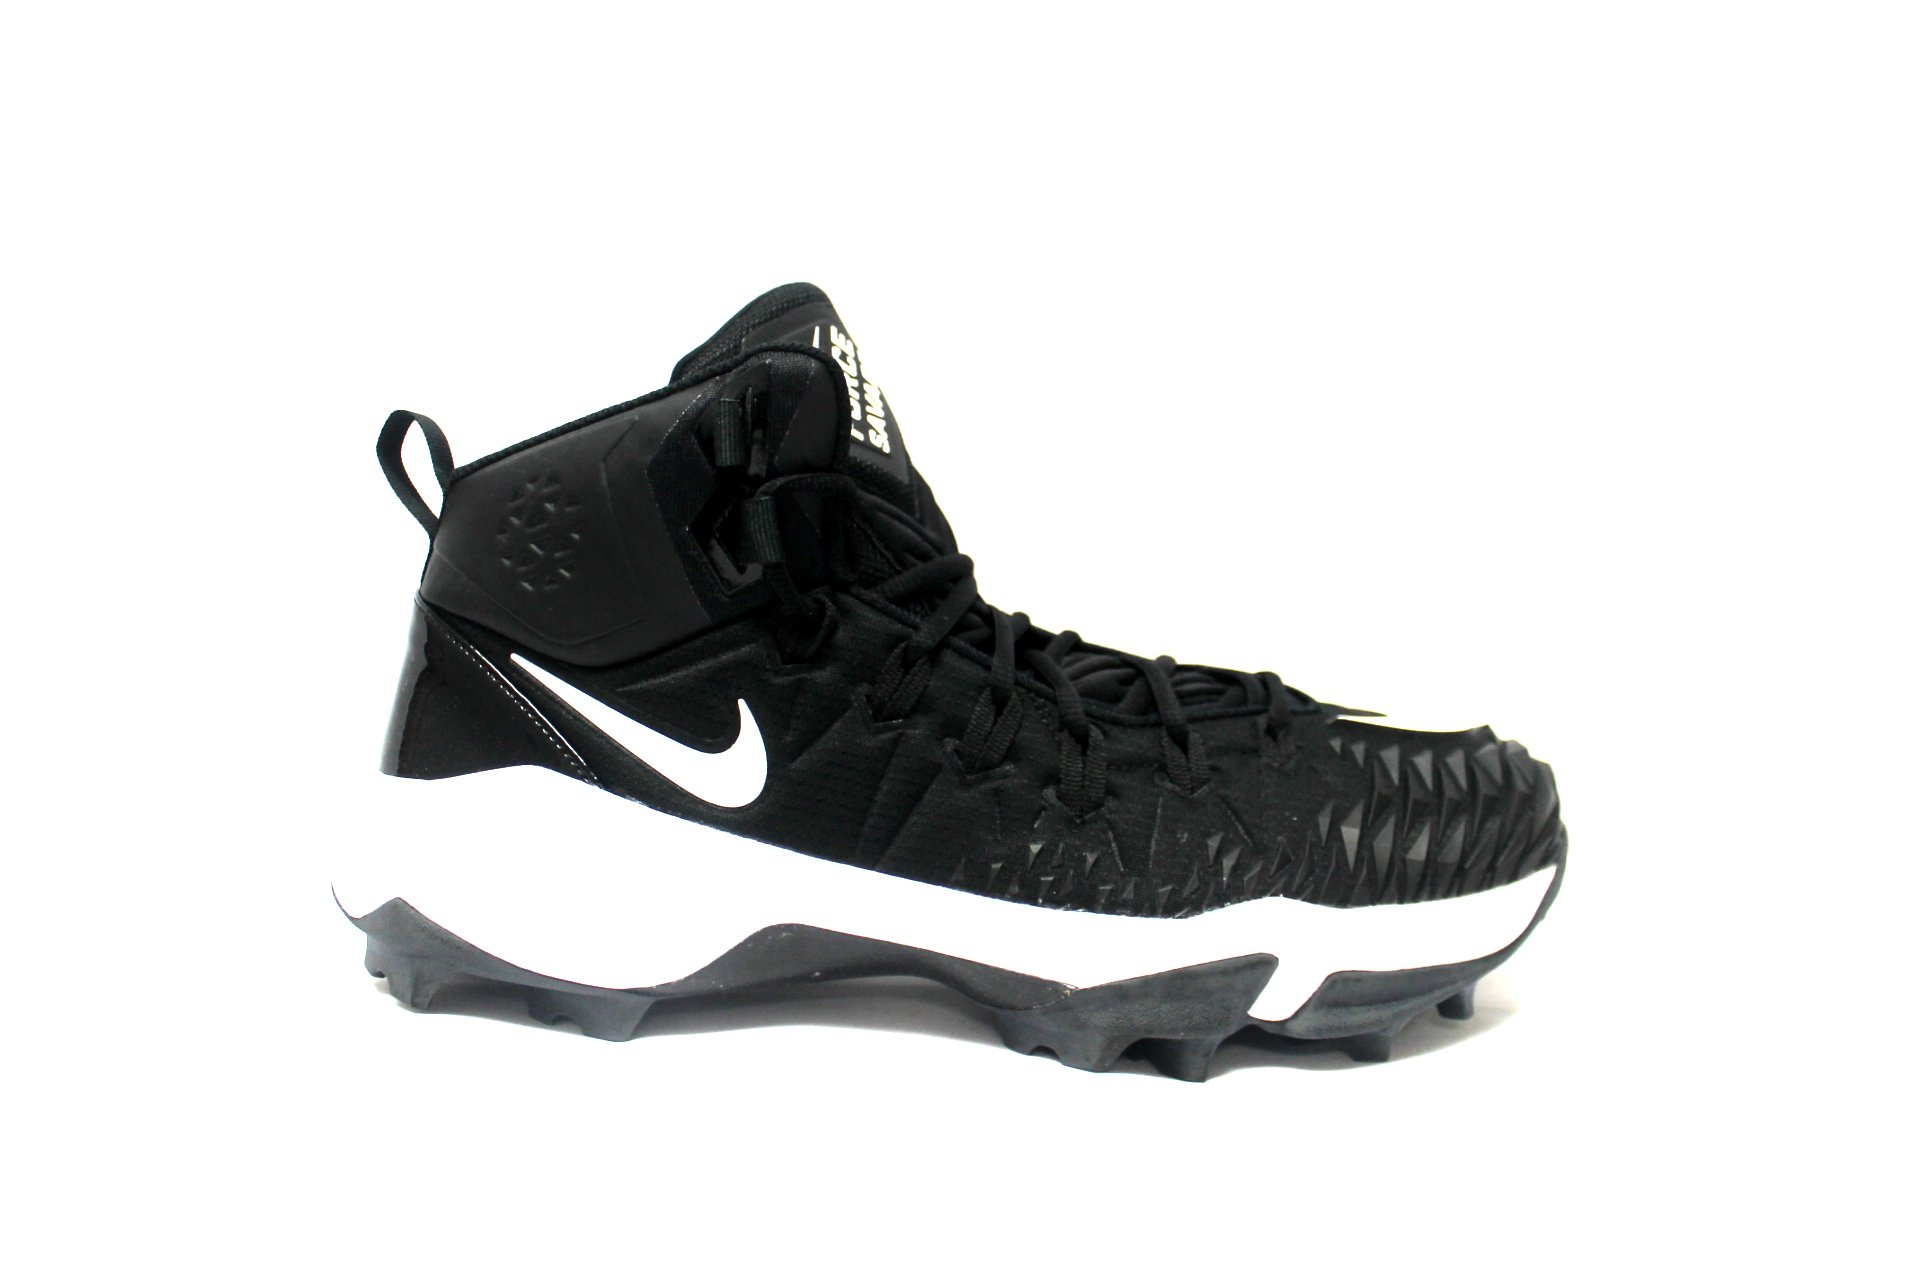 NIKE Men's Force Savage Shark Football Cleat (14, Black/White)